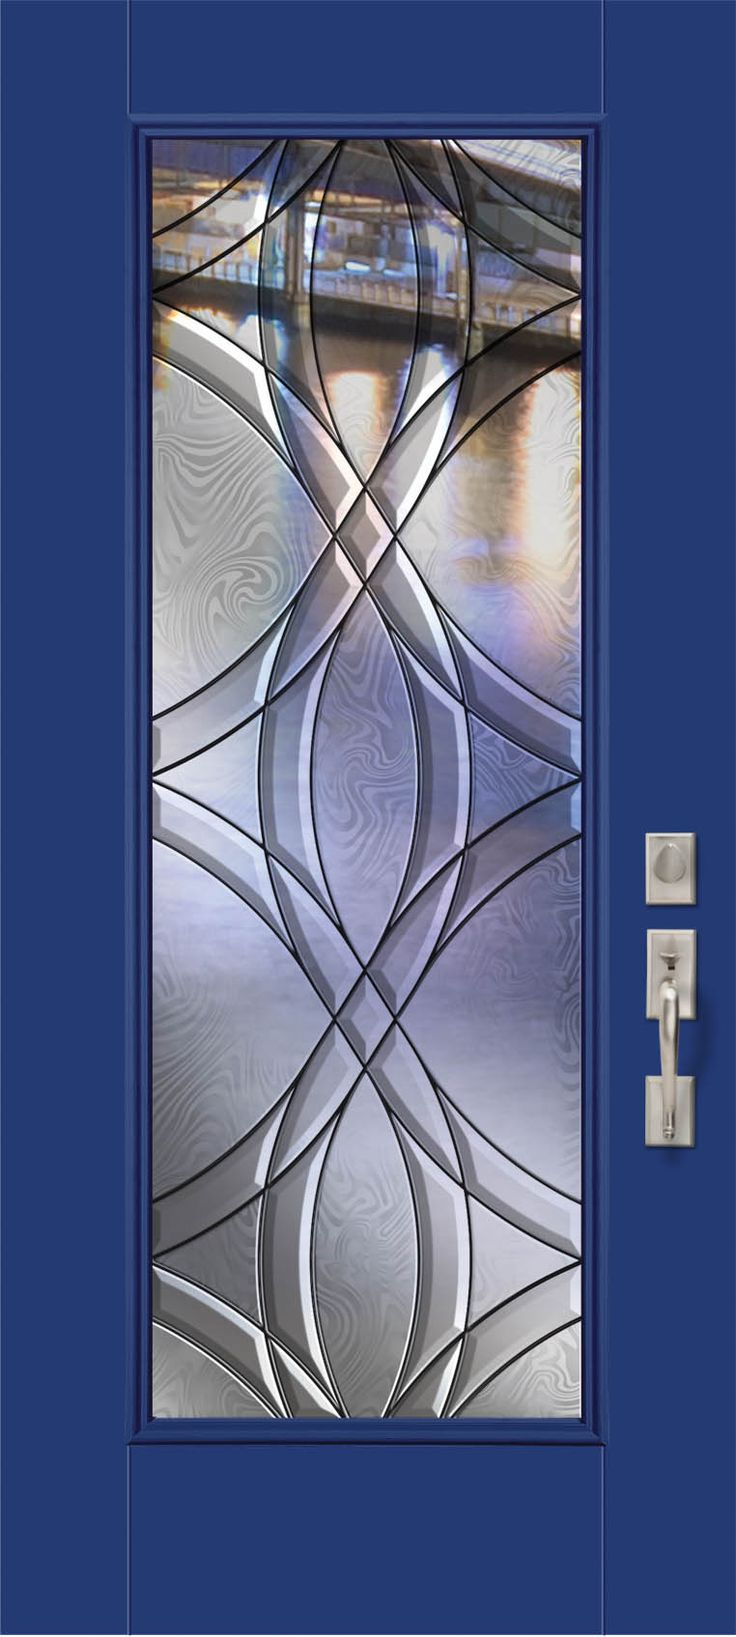 The urban contemporary appeal of the Chelsea™ glass is accentuated by the bright blue color & The 35 best images about Badger Exterior Doors \u0026 Millwork on ... Pezcame.Com